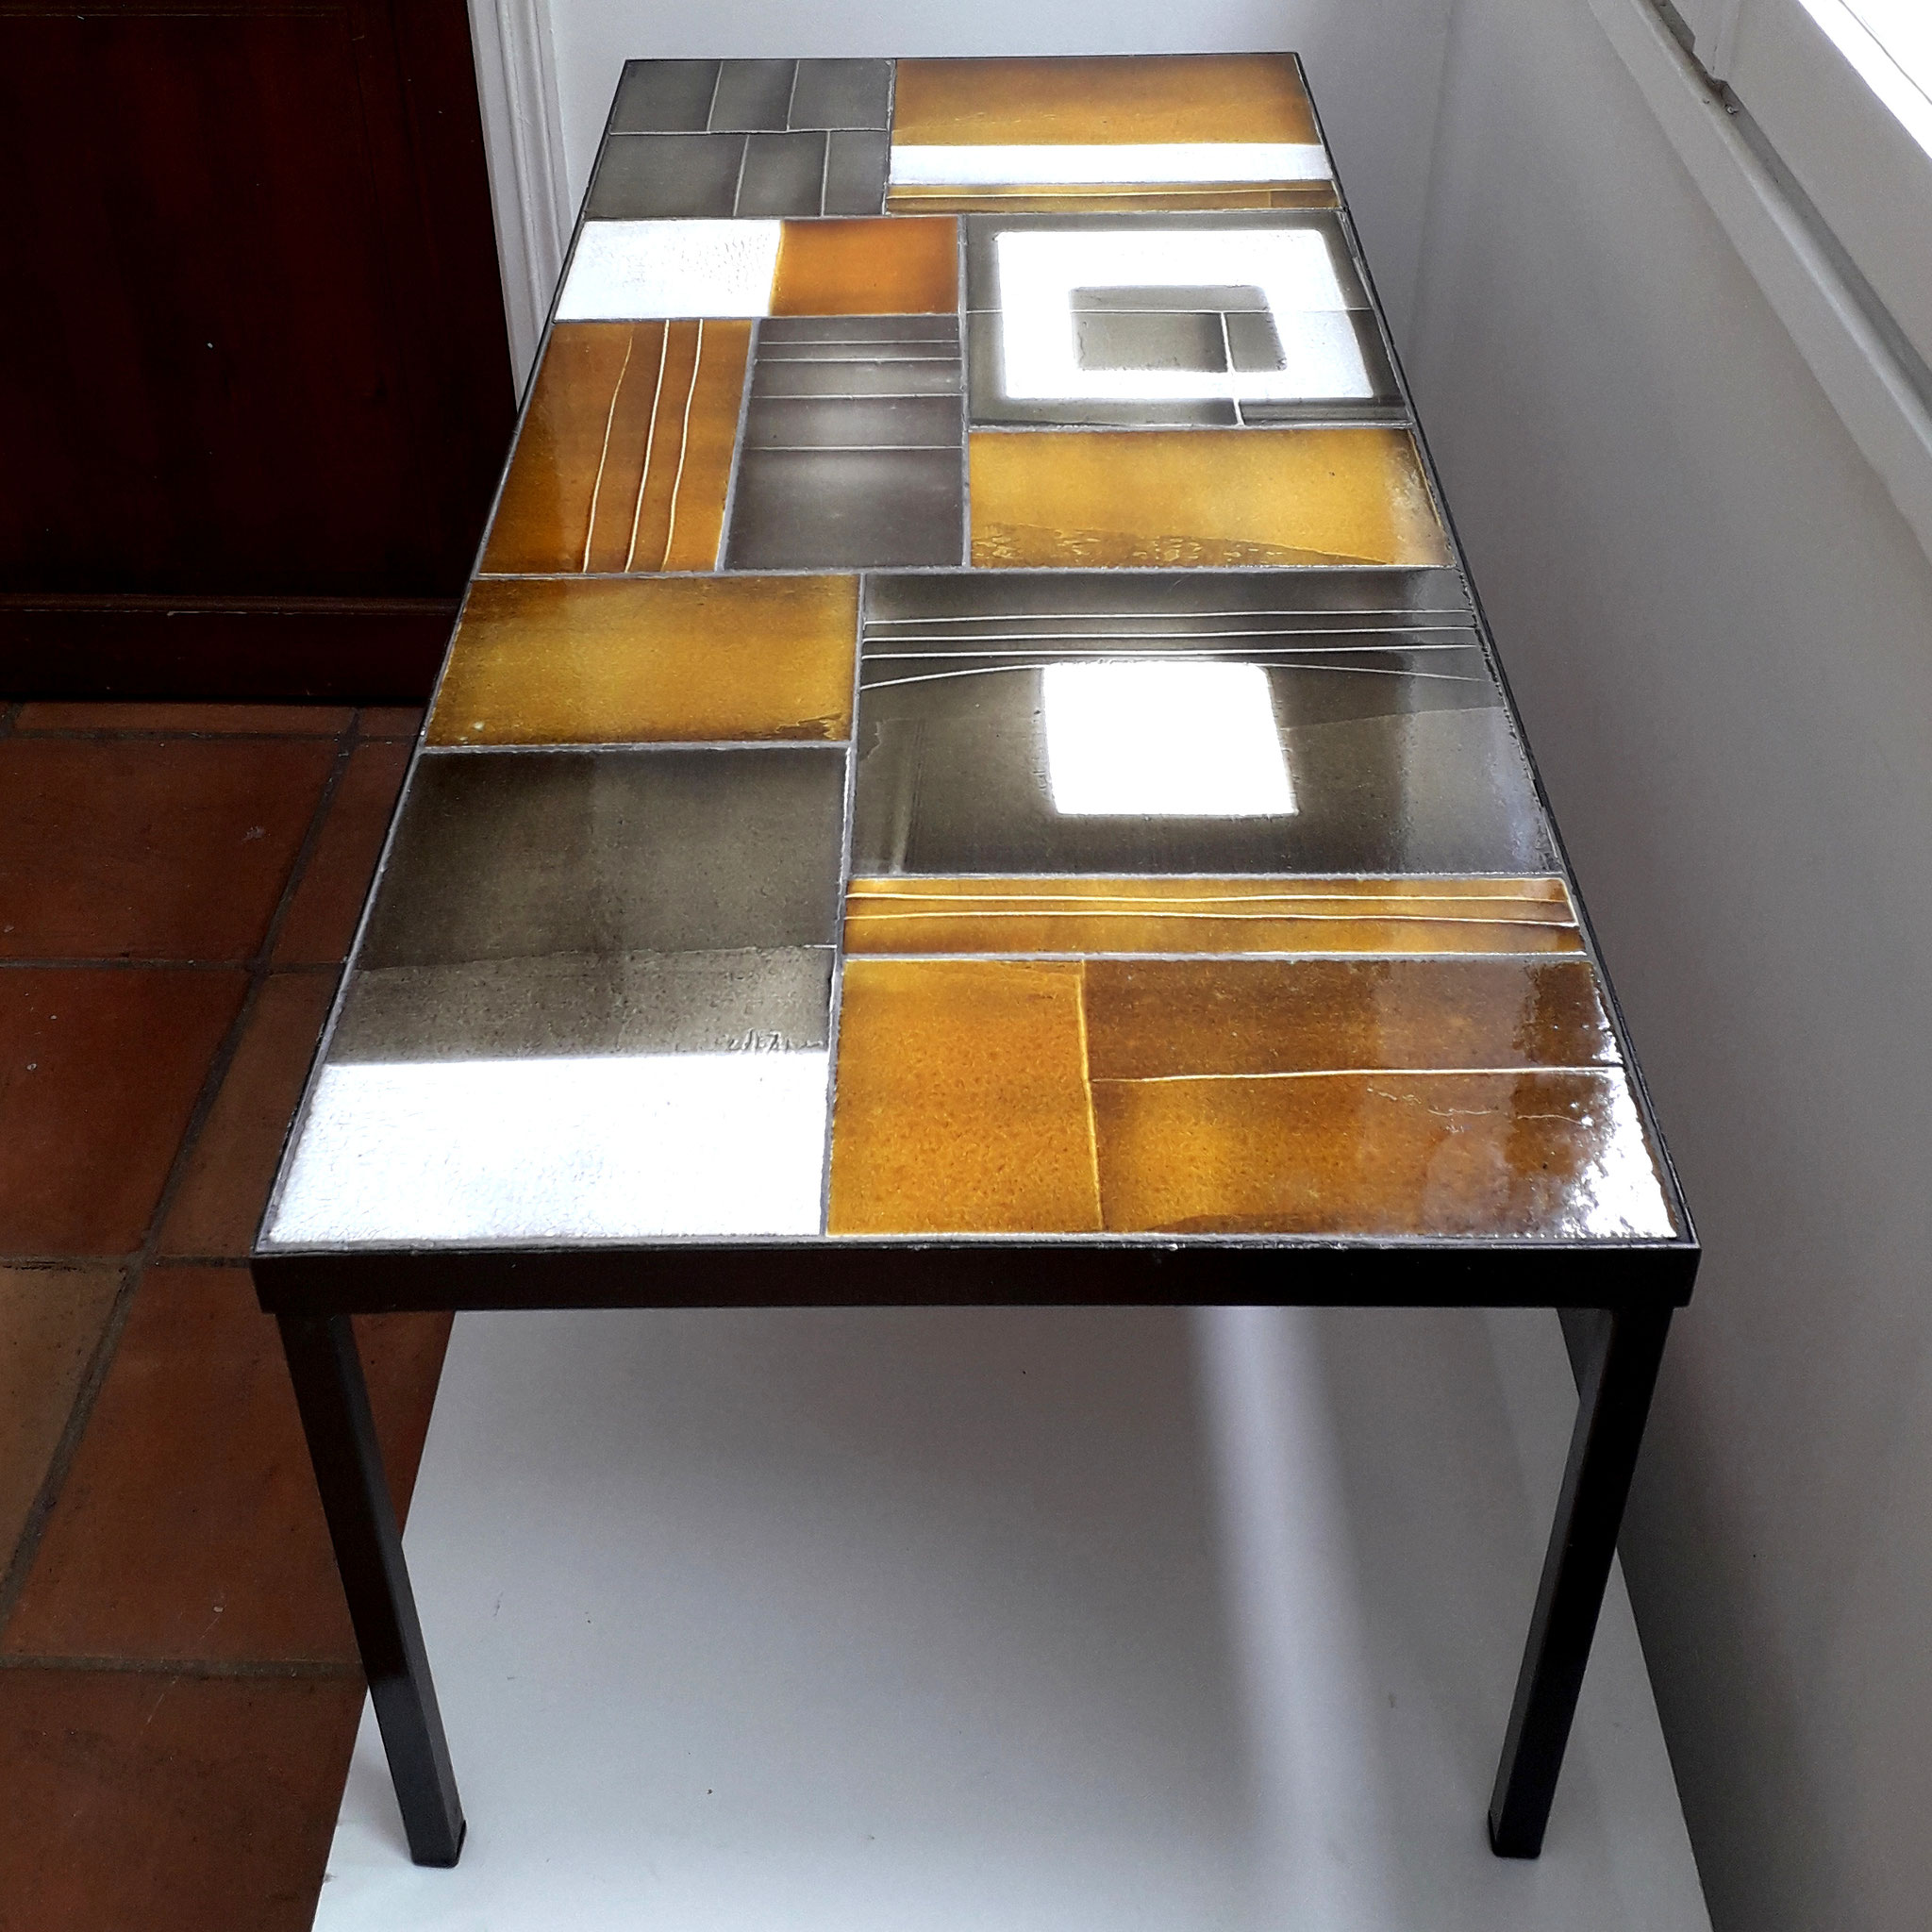 Table basse, c. 1970